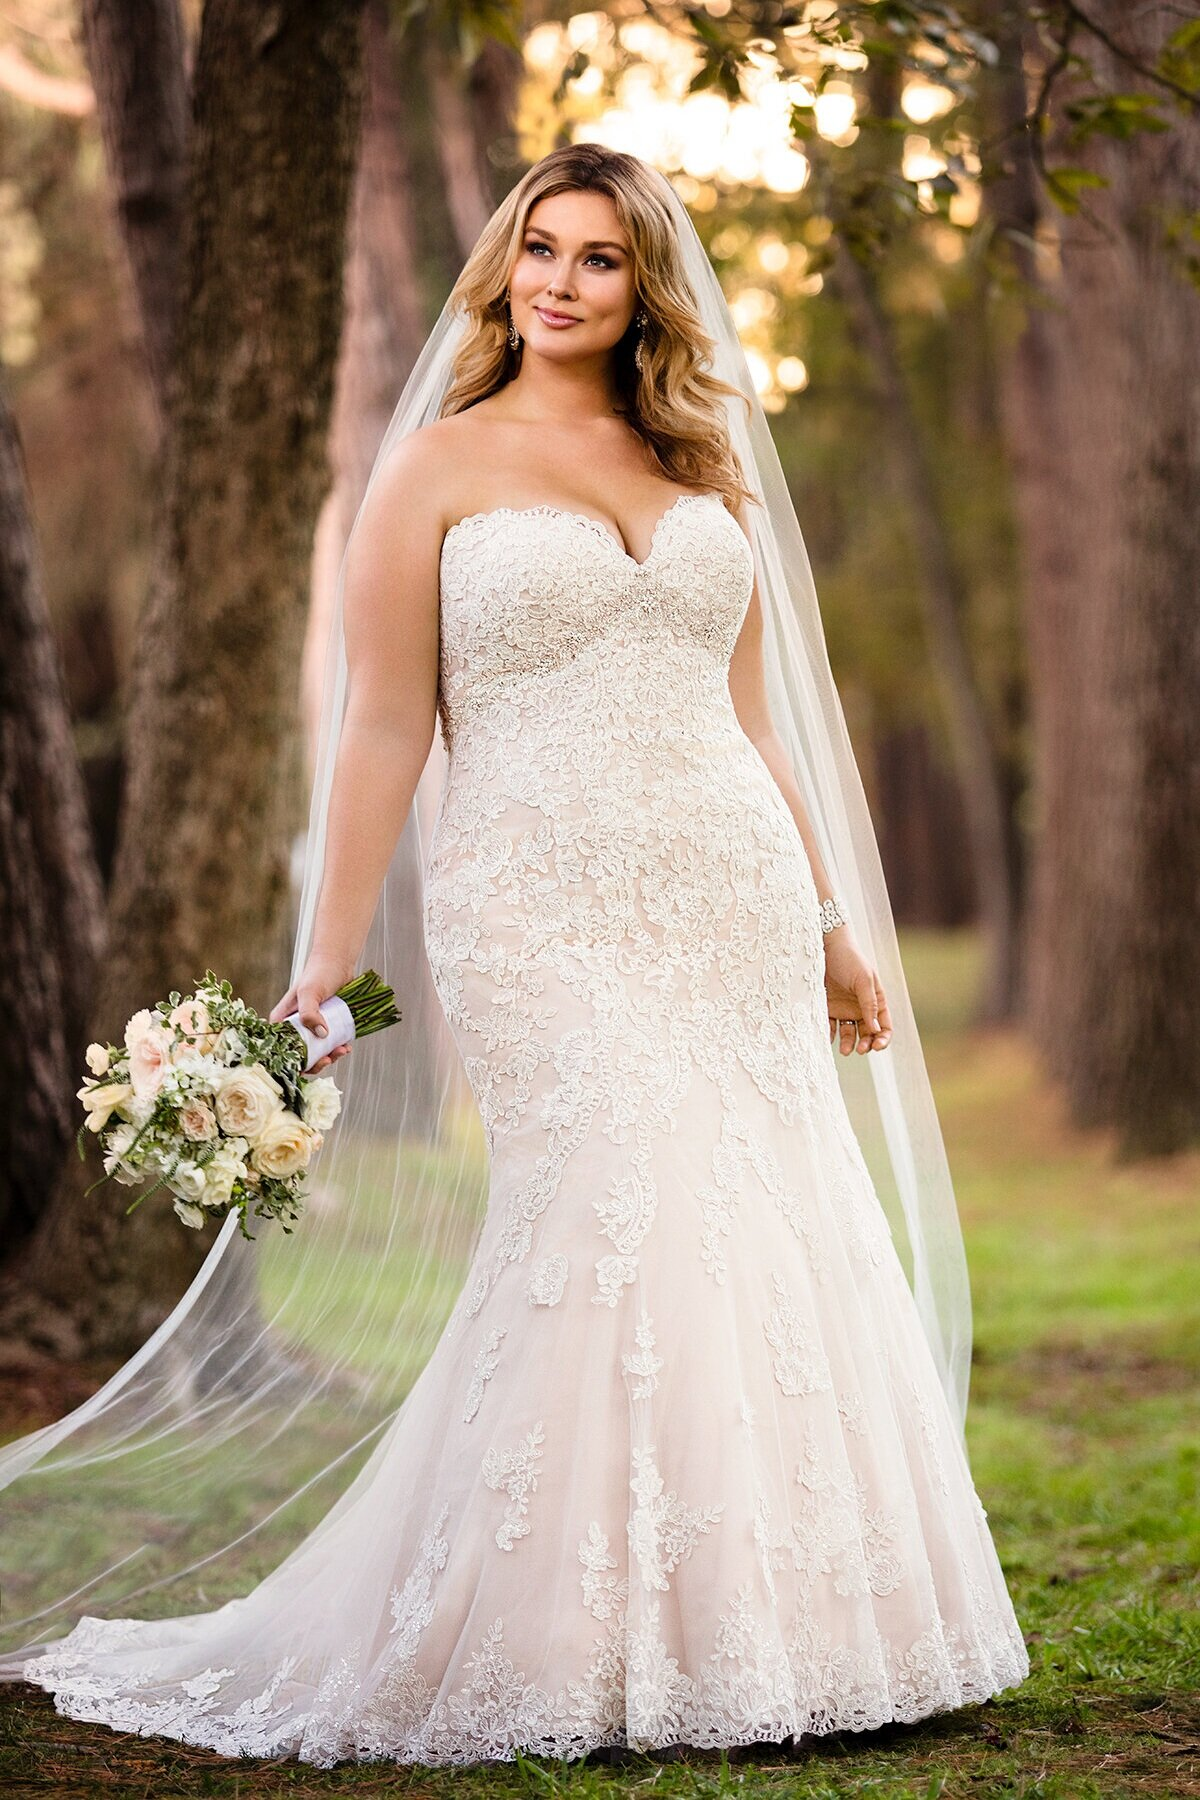 Stella York Curves $899-$1800